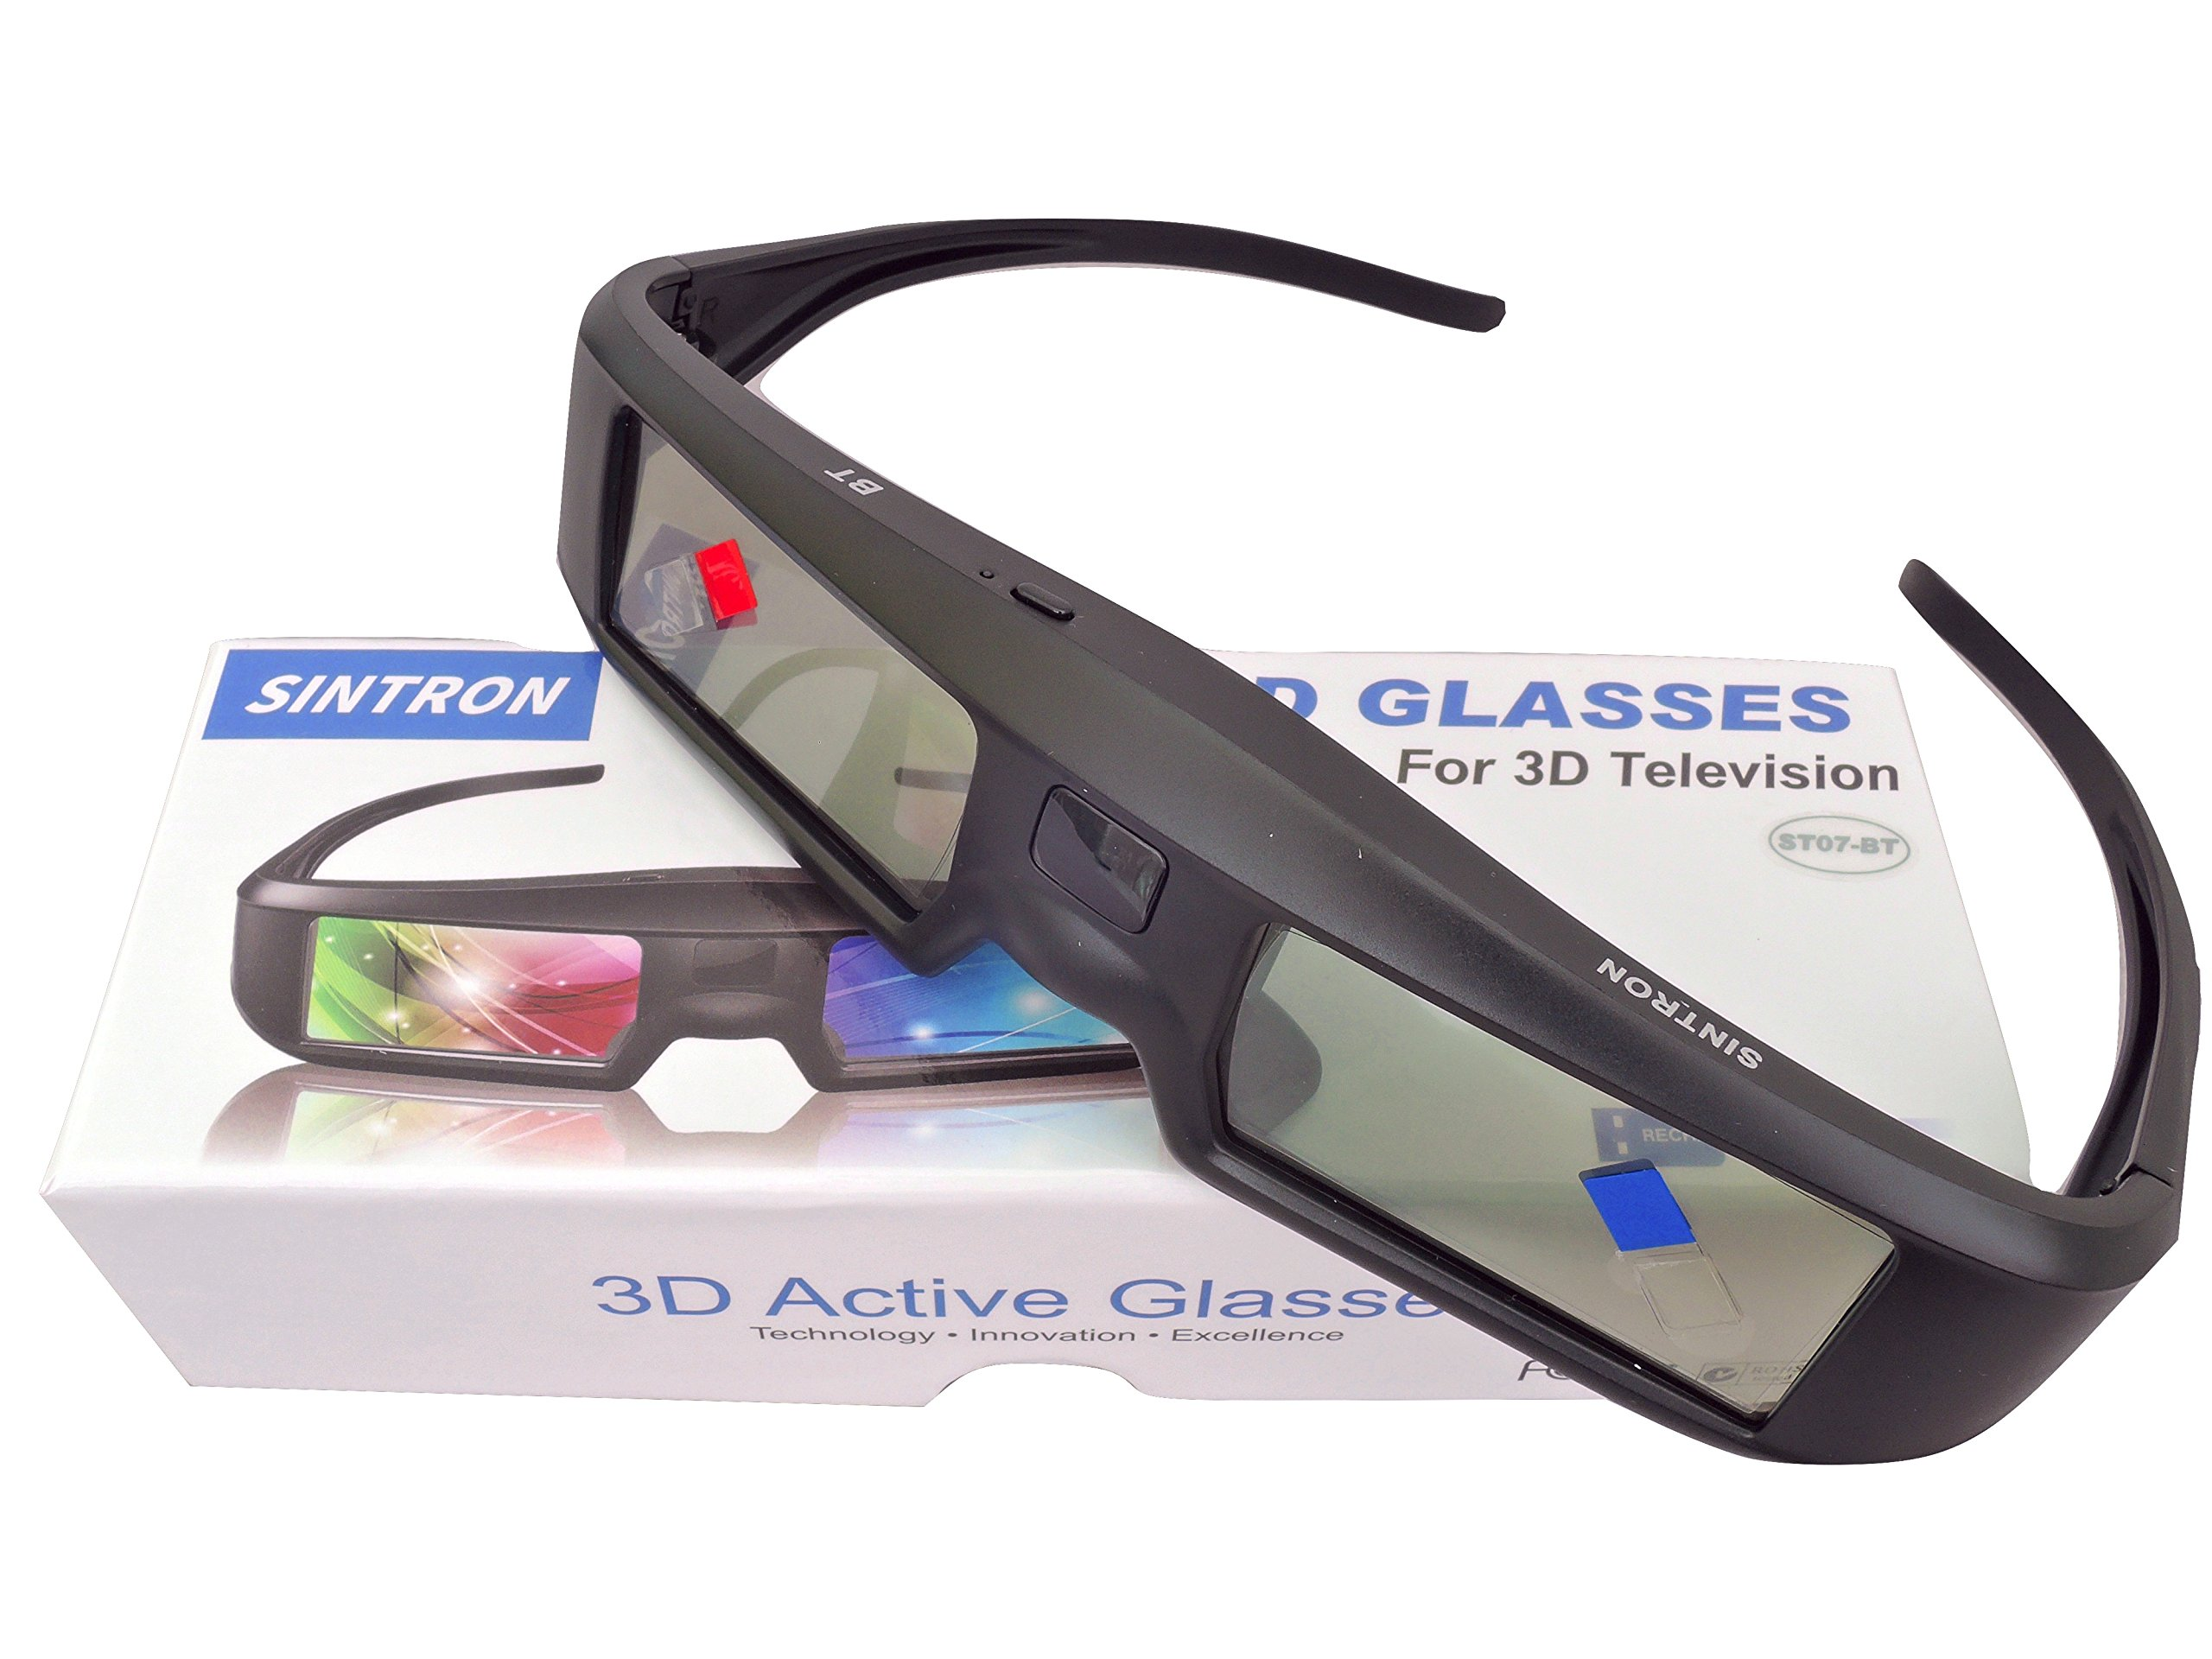 2X 3D Active Shutter Glasses Rechargeable - Sintron ST07-BT for RF 3D TV, 3D Glasses for Sony, Panasonic, Samsung 3D TV, Epson 3D projector, Compatible with TDG-BT500A TDG-BT400A TY-ER3D5MA TY-ER3D4MA by Sintron (Image #5)